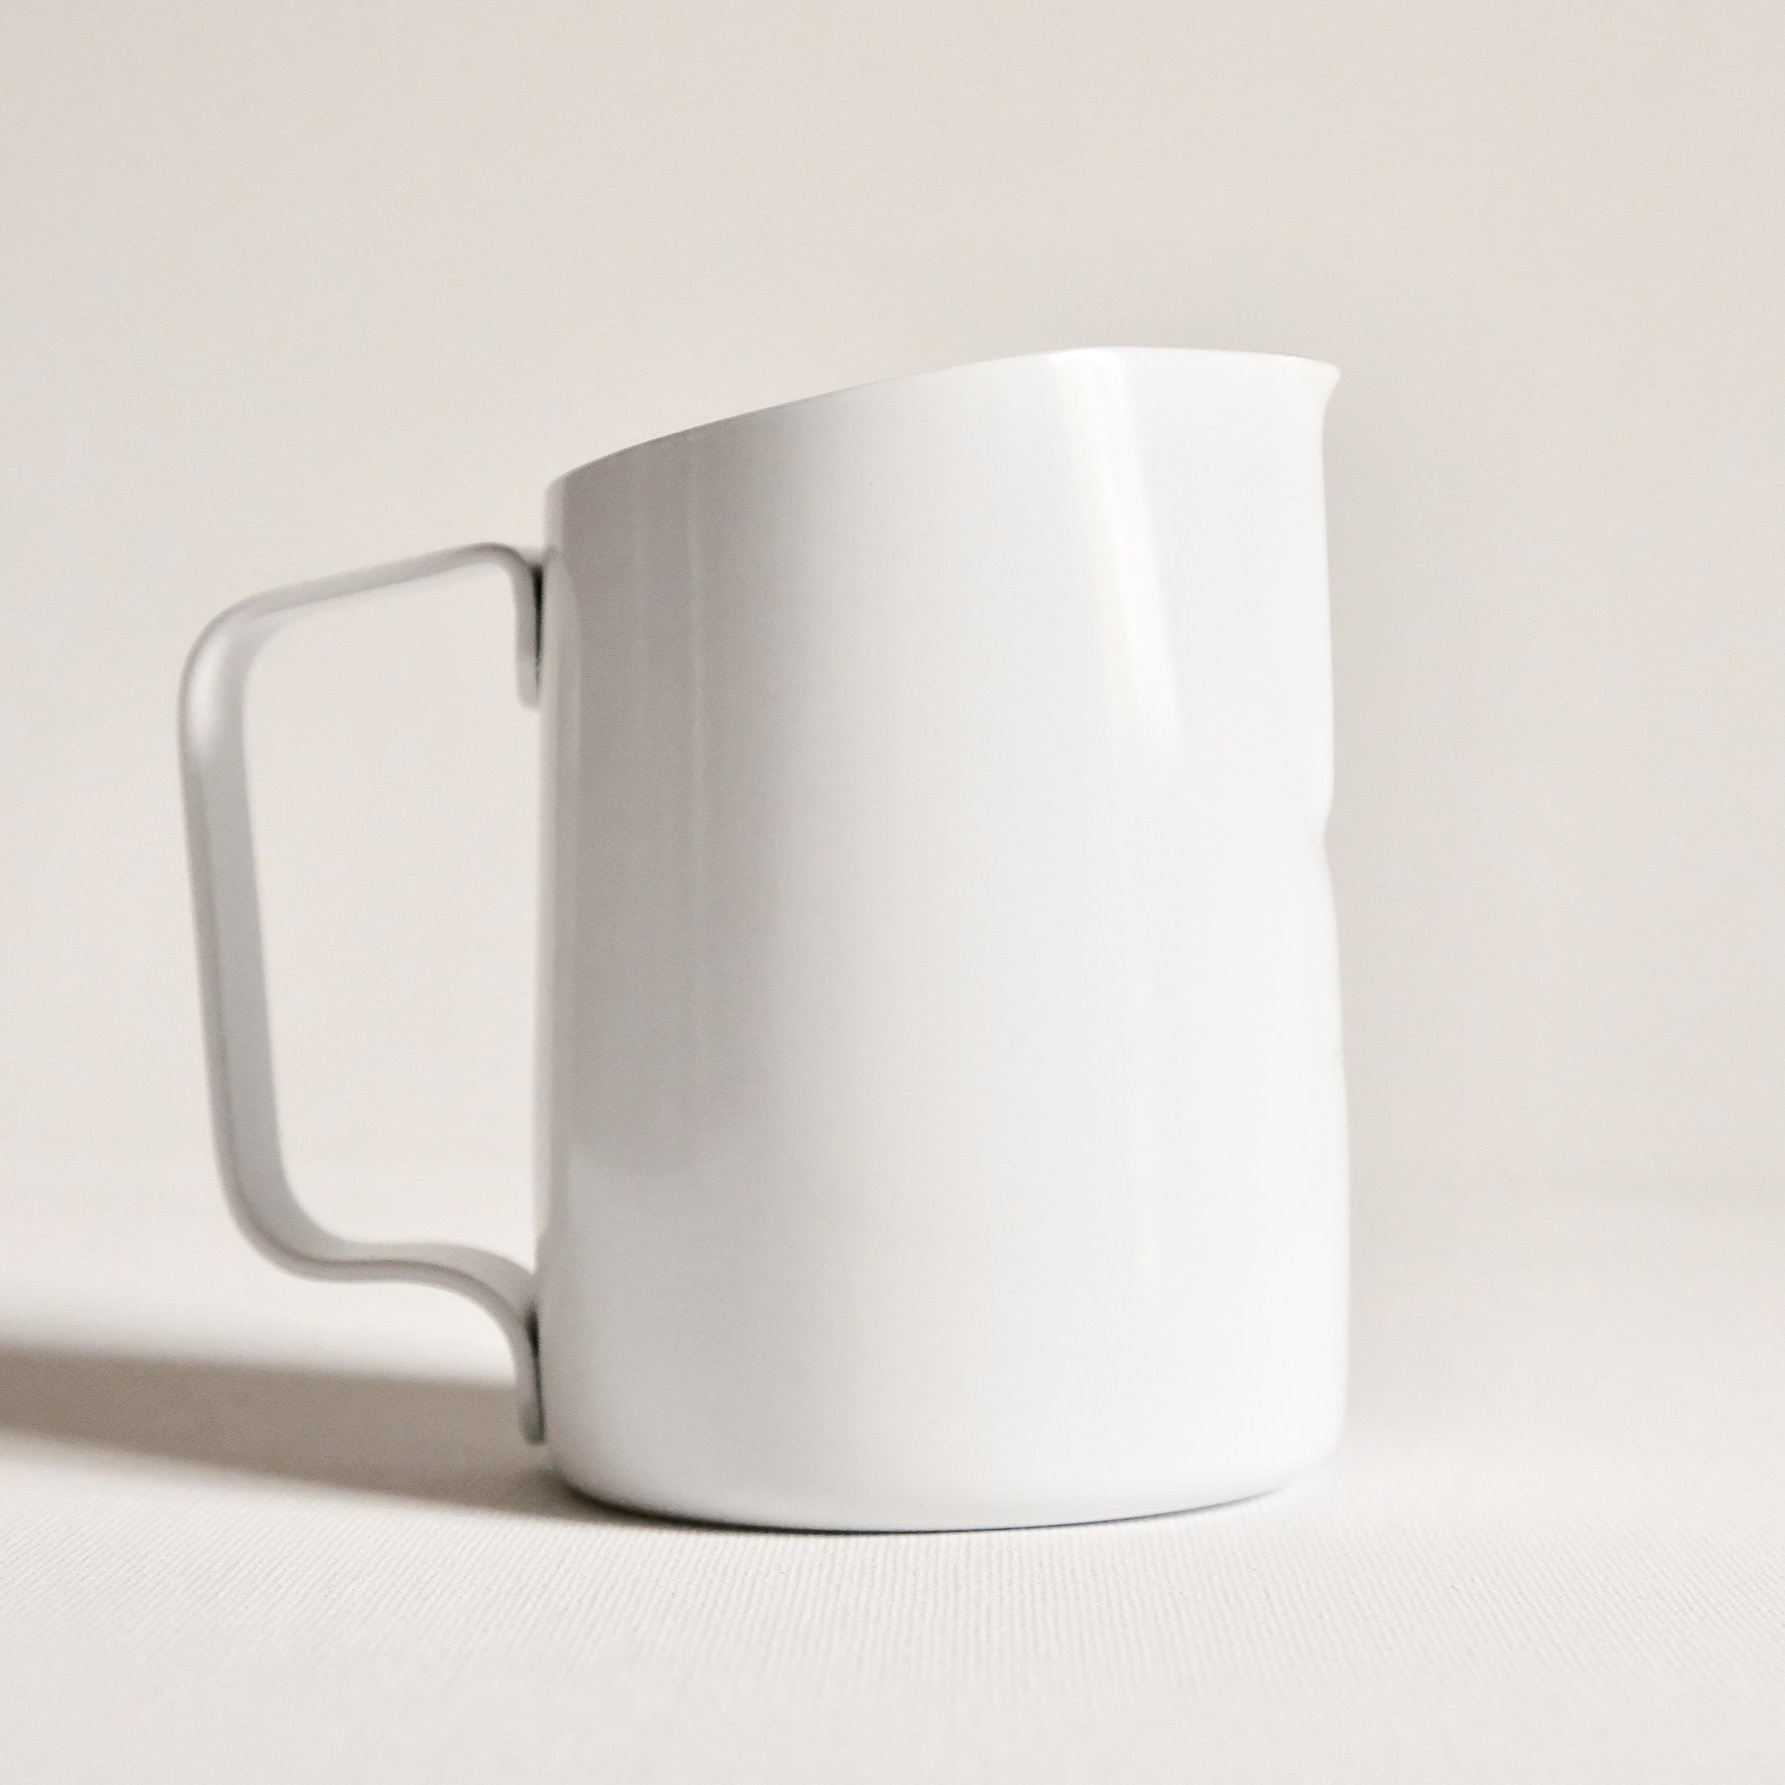 15 oz Pitchers    Perfect Size for 6-10 oz cups.